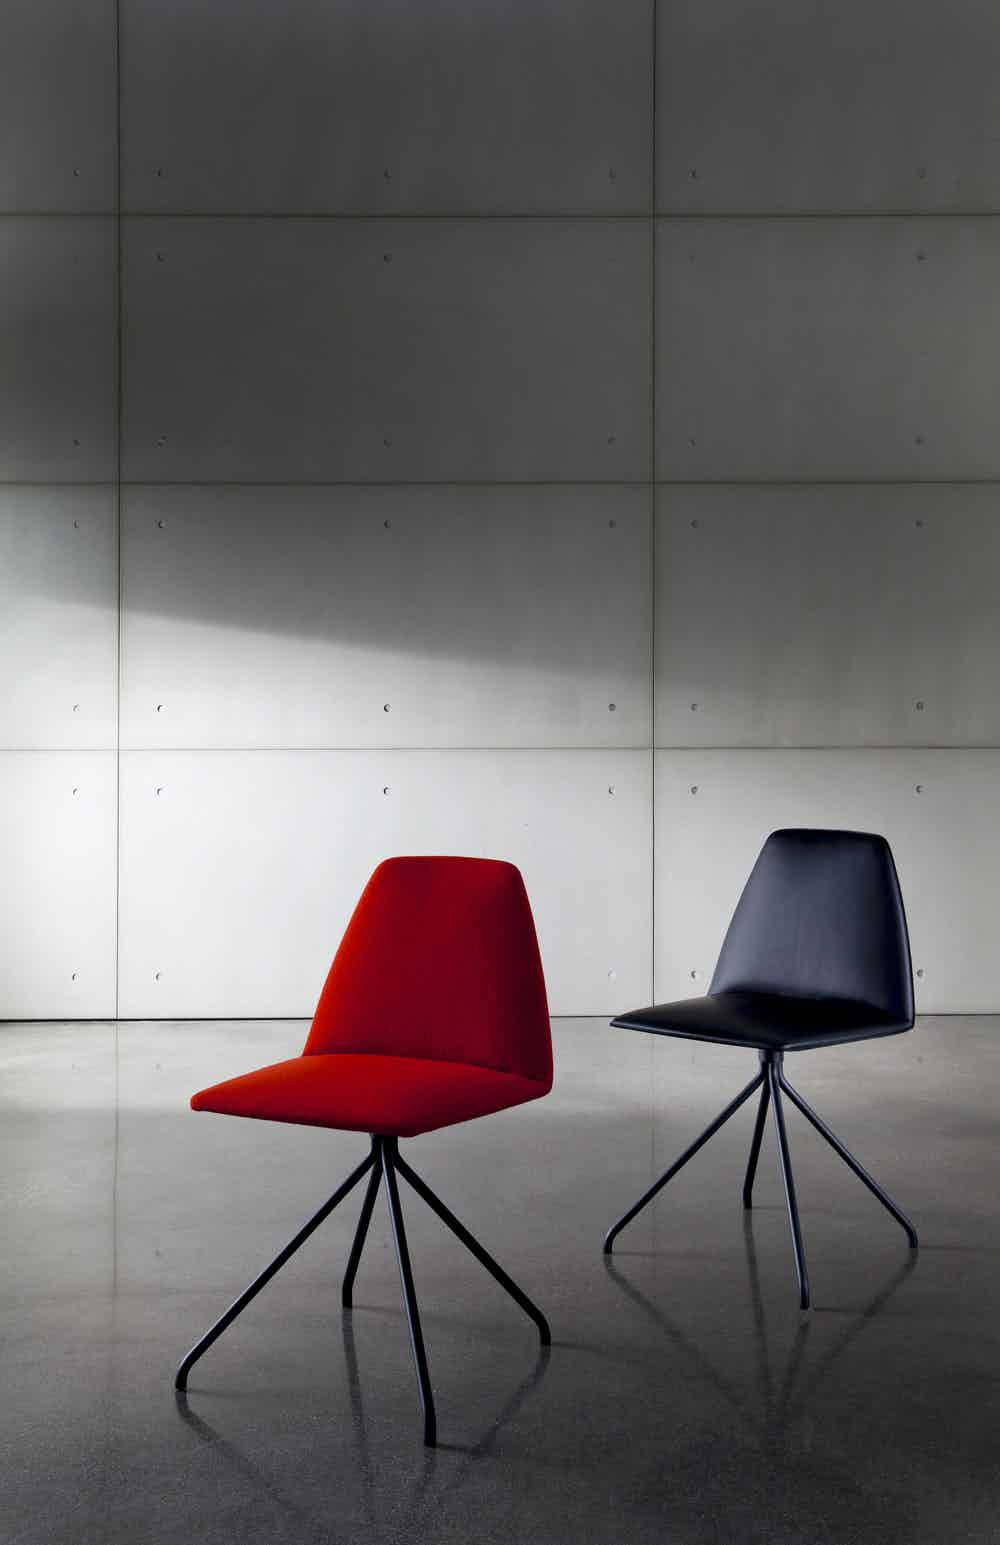 Sovet-sila-chair-trestle-base-insitu-haute-living